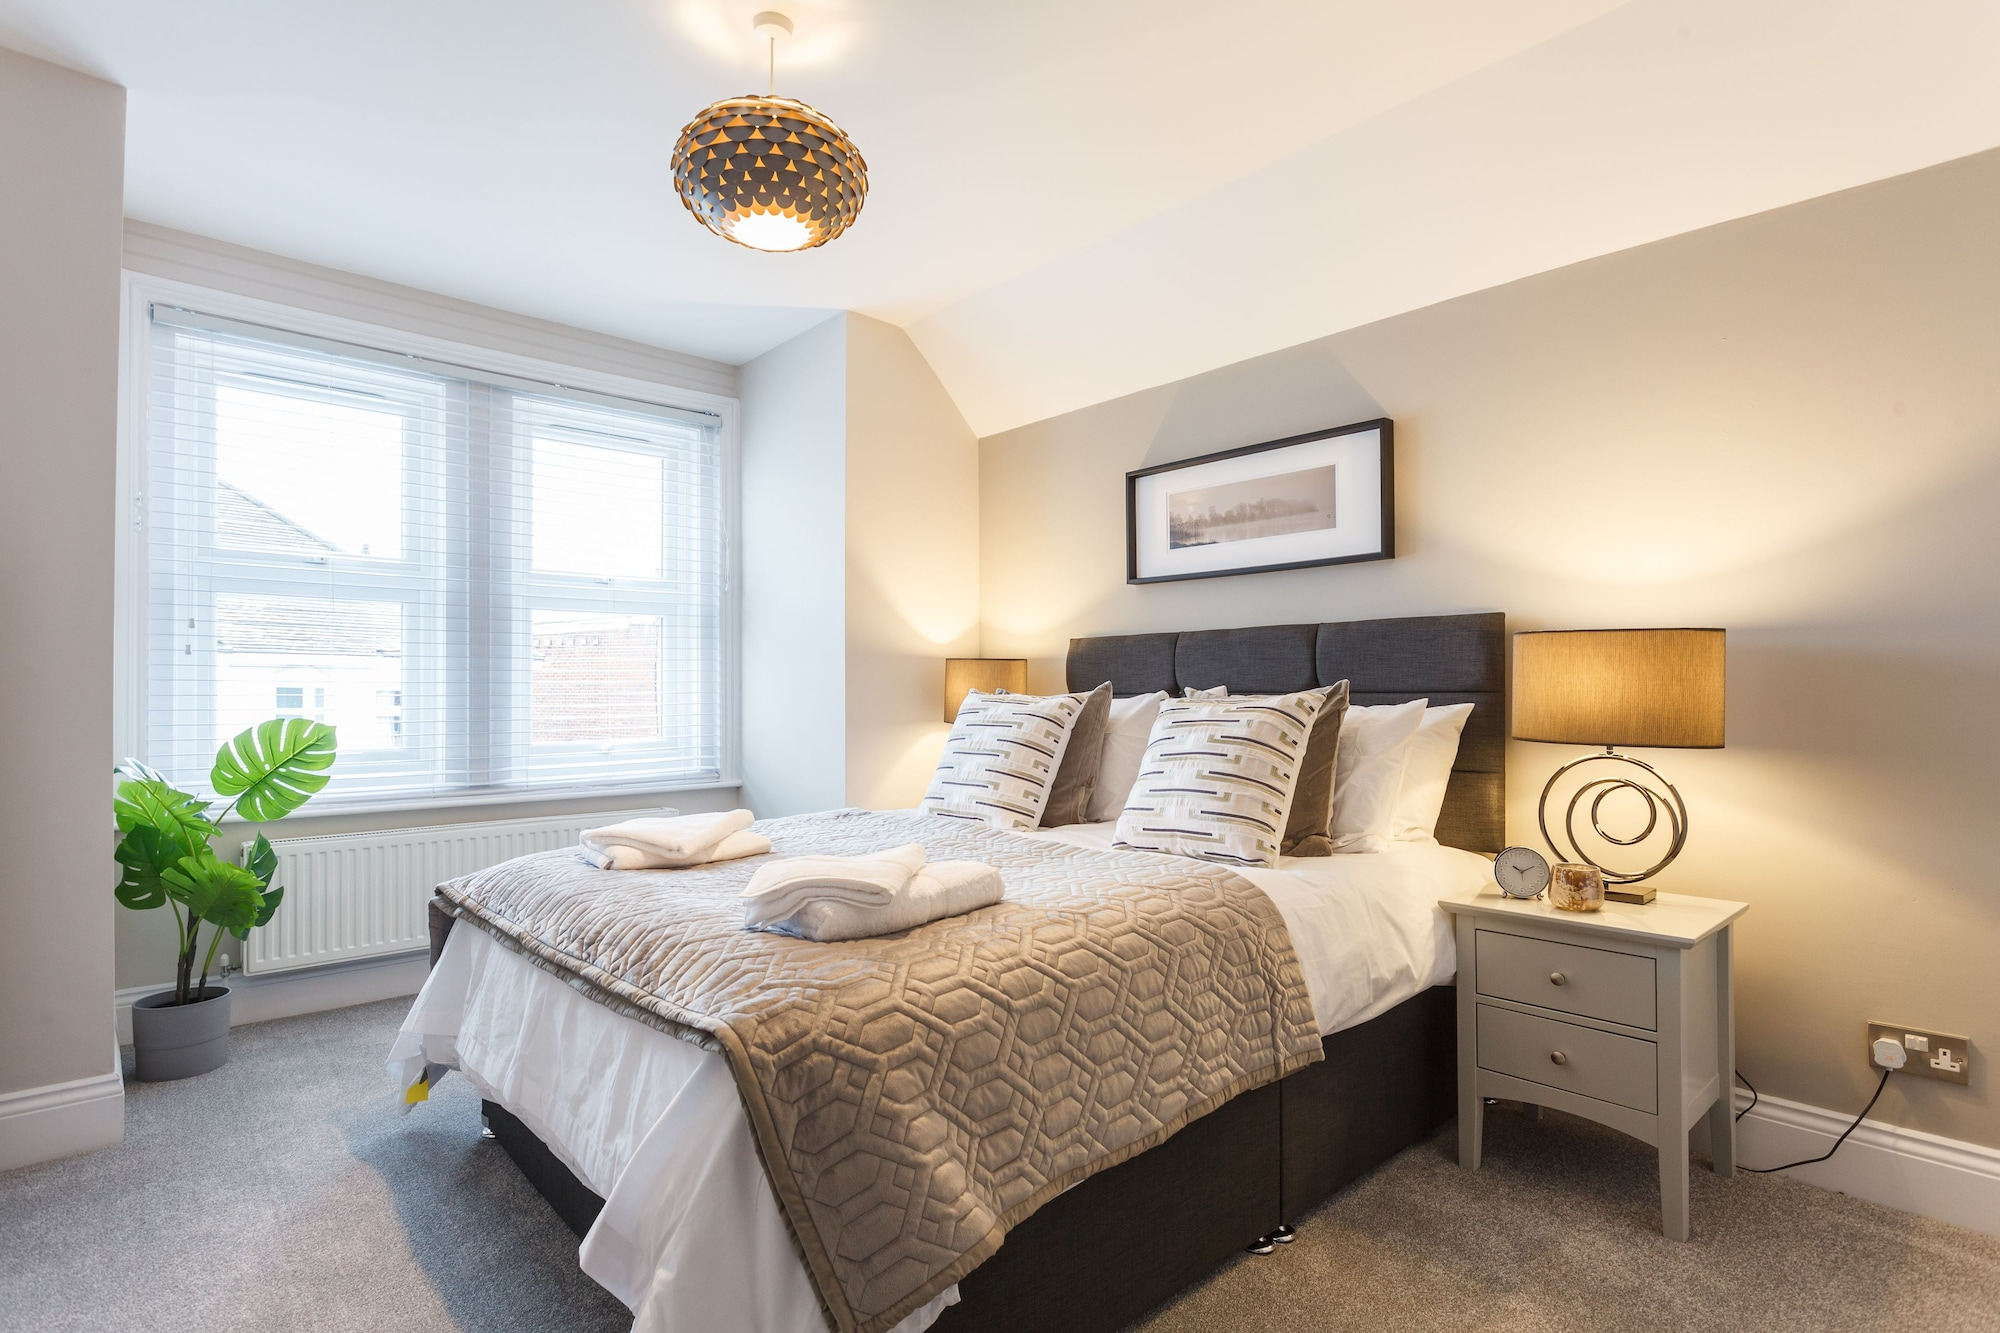 Stylish Town Centre House - Reef House, Poole